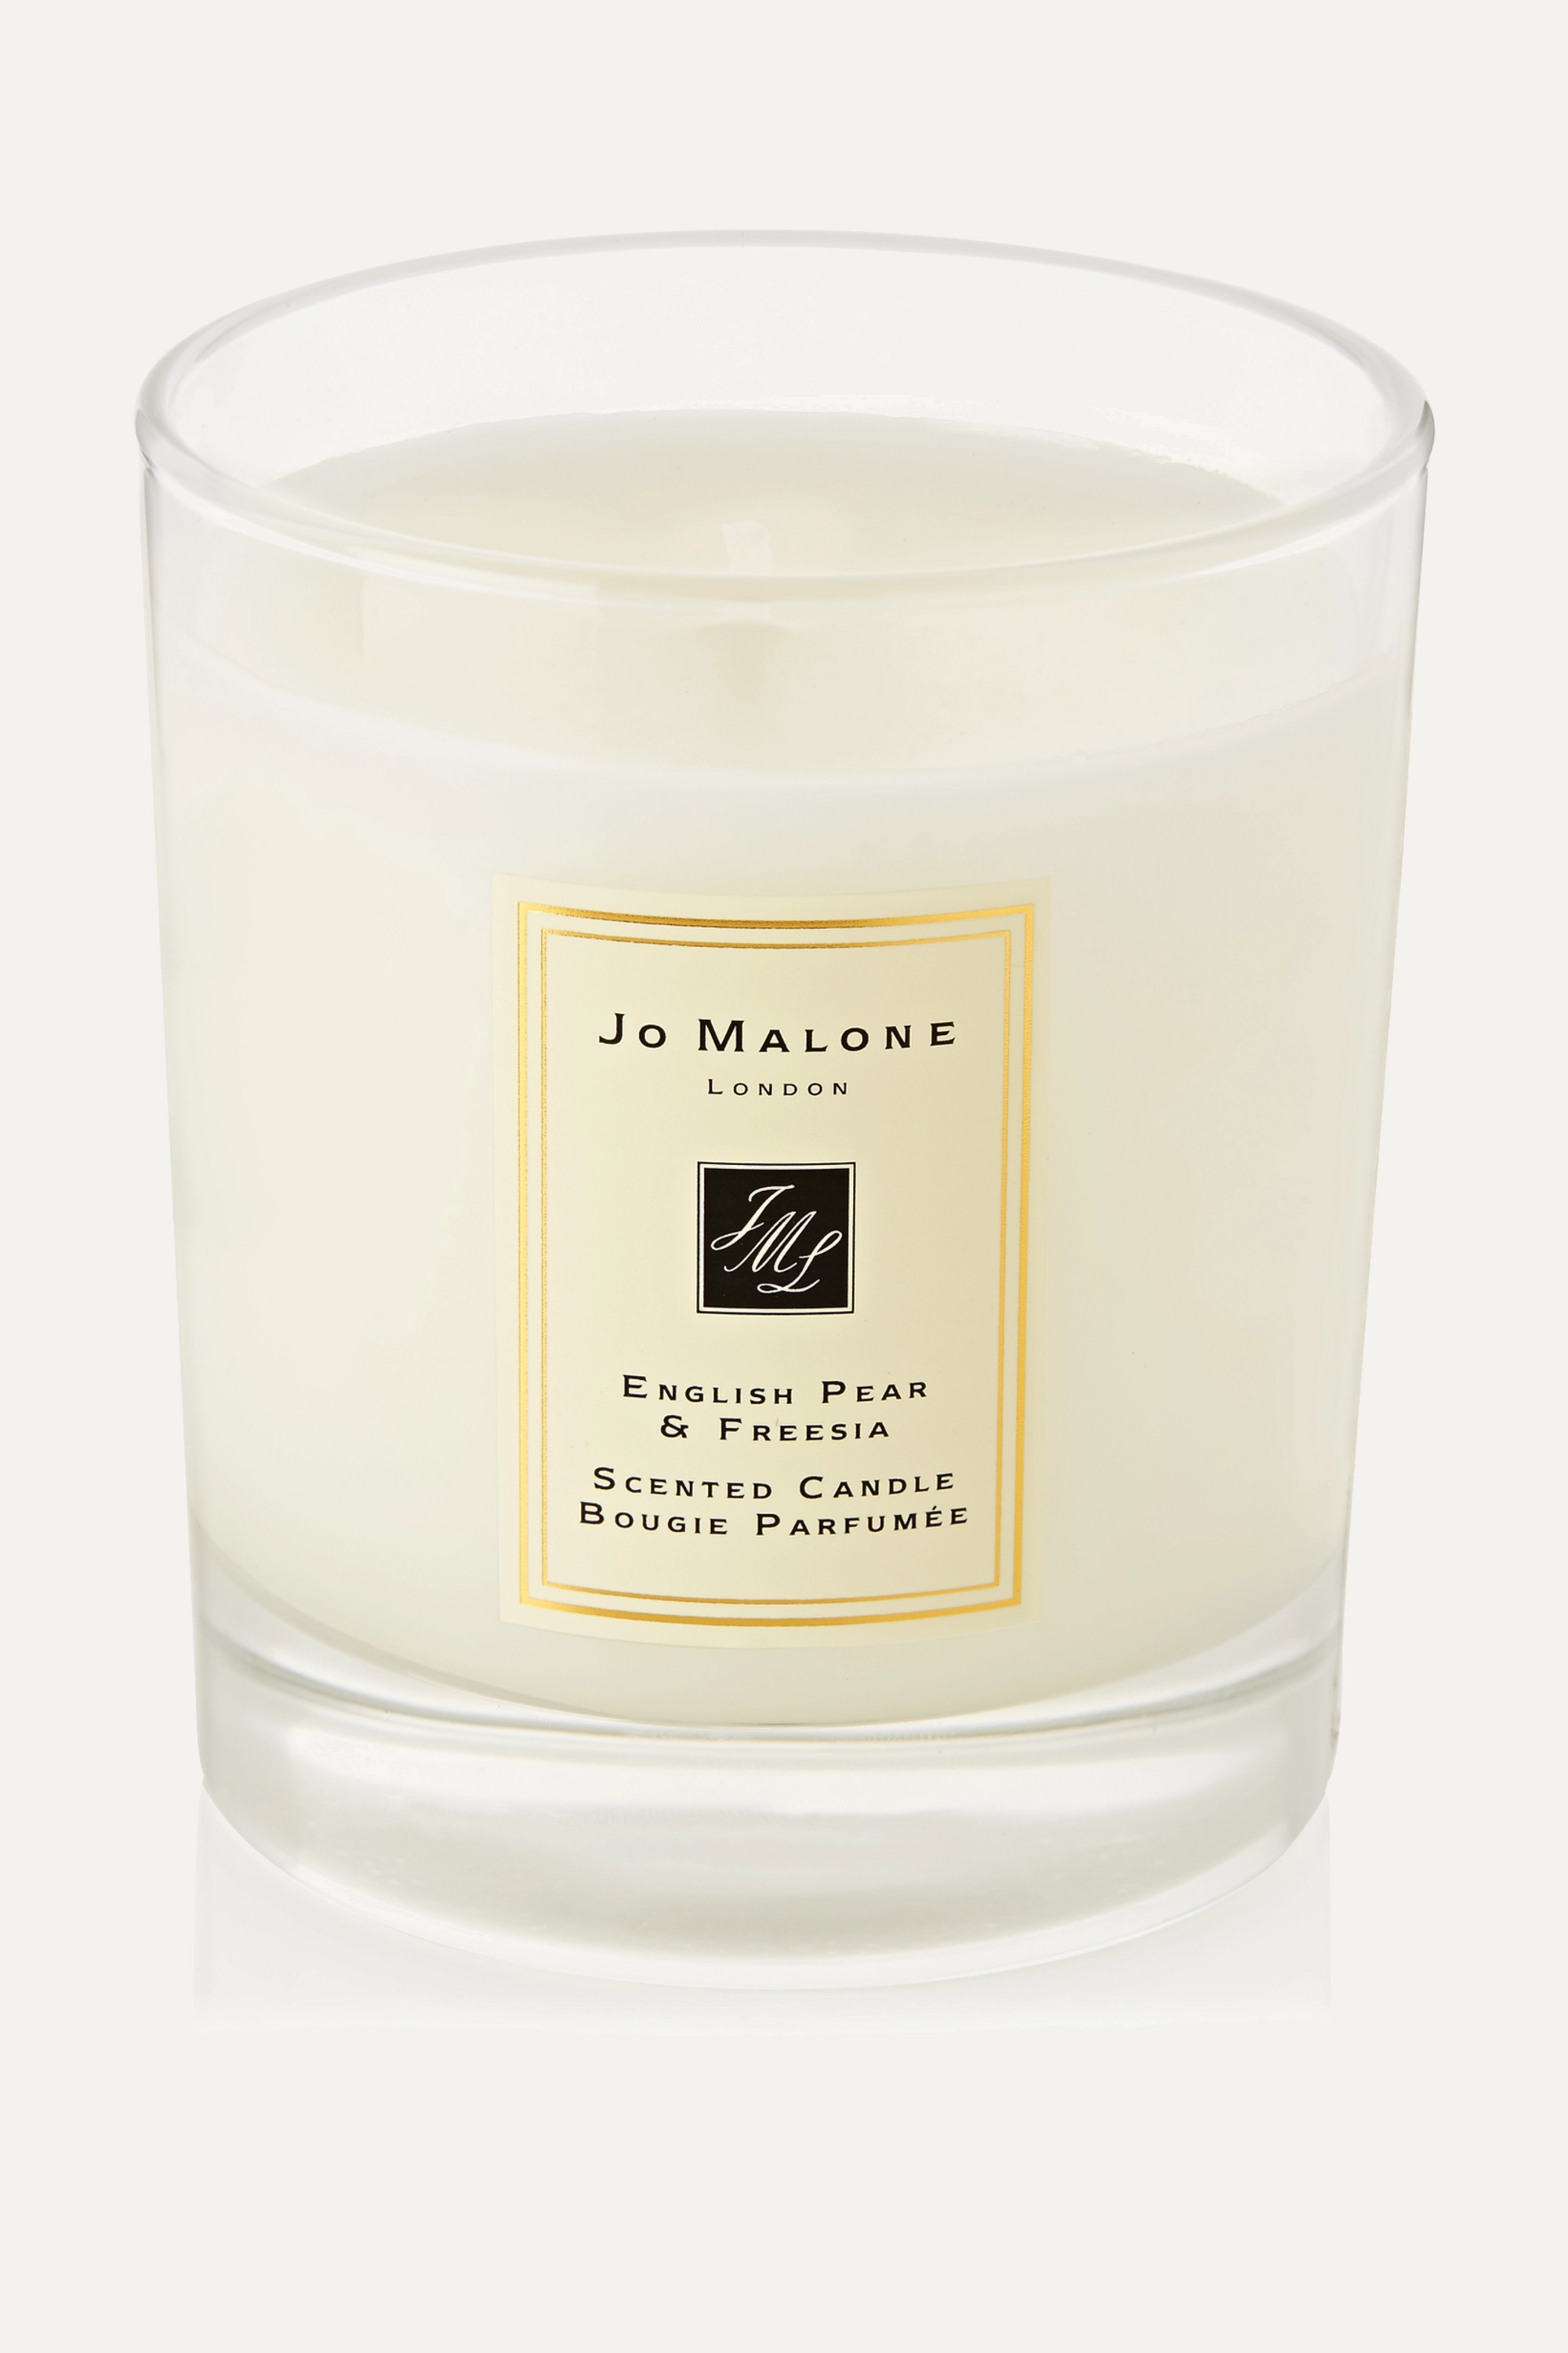 Jo Malone London English Pear & Freesia Scented Home Candle, 200g